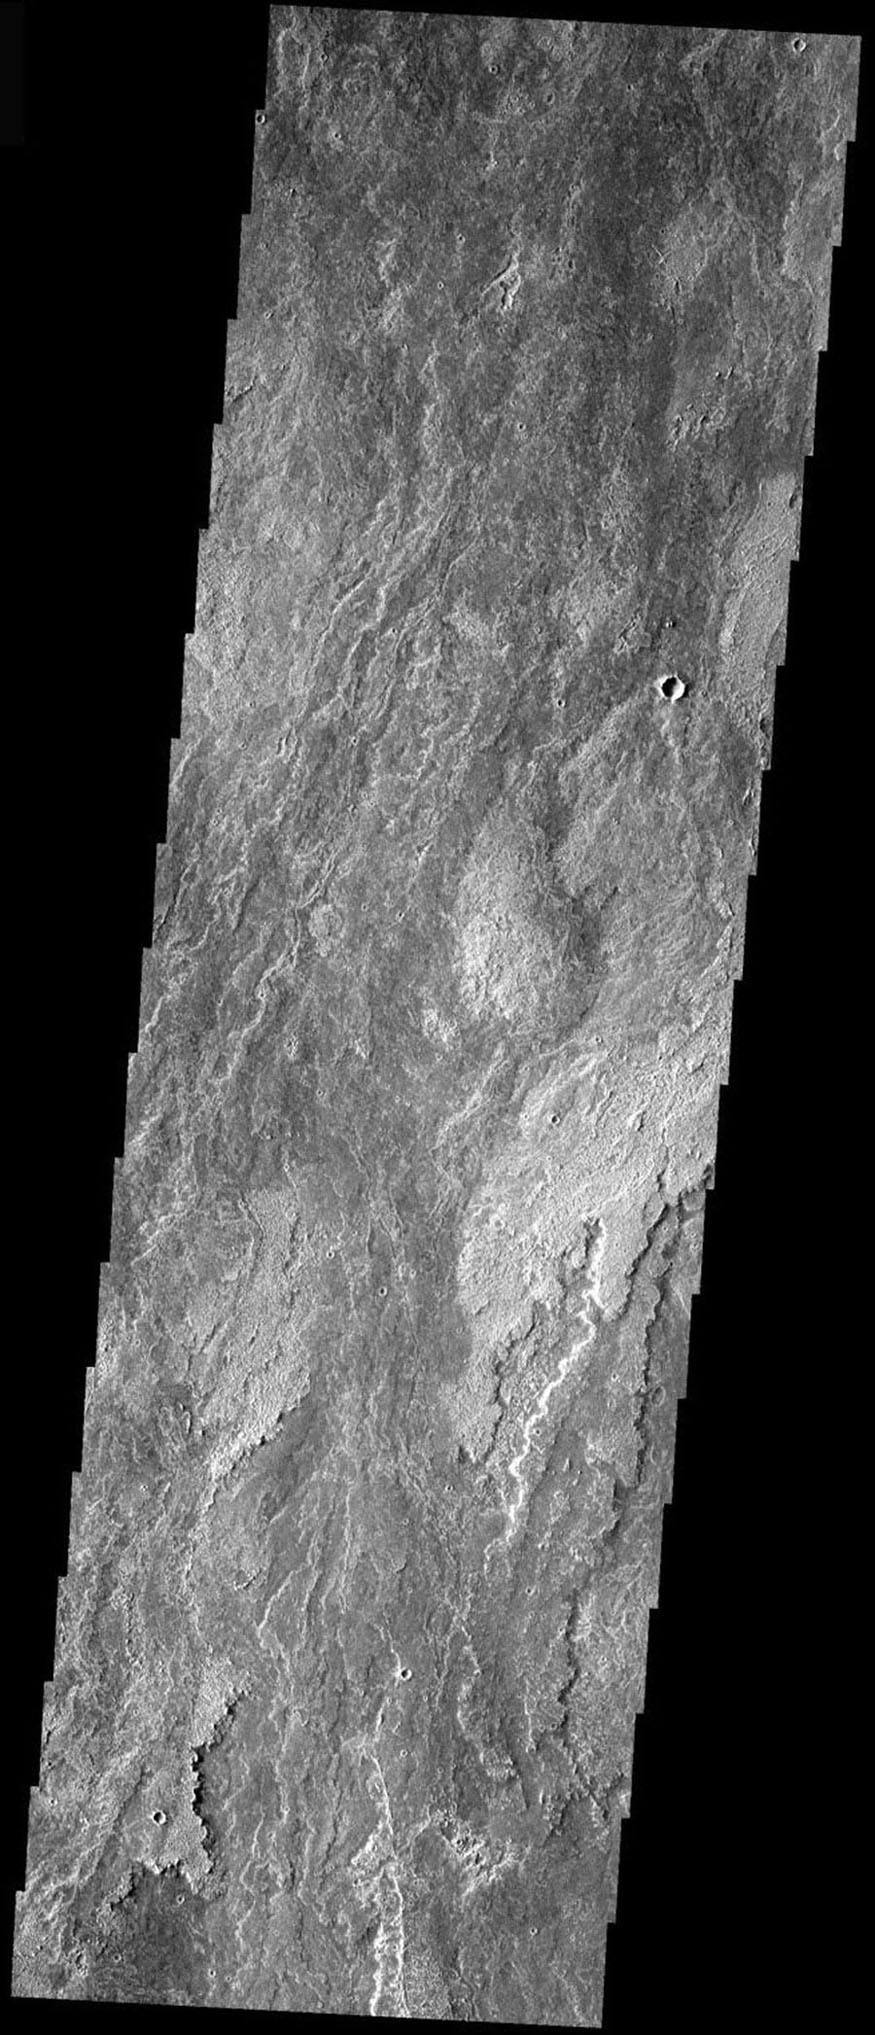 The lava flows from Arsia Mons are some of the youngest flows in the region, as seen in this image from NASA's Mars Odyssey spacecraft. The flows are long, fairly narrow, overlapping, and with various surface features and textures.